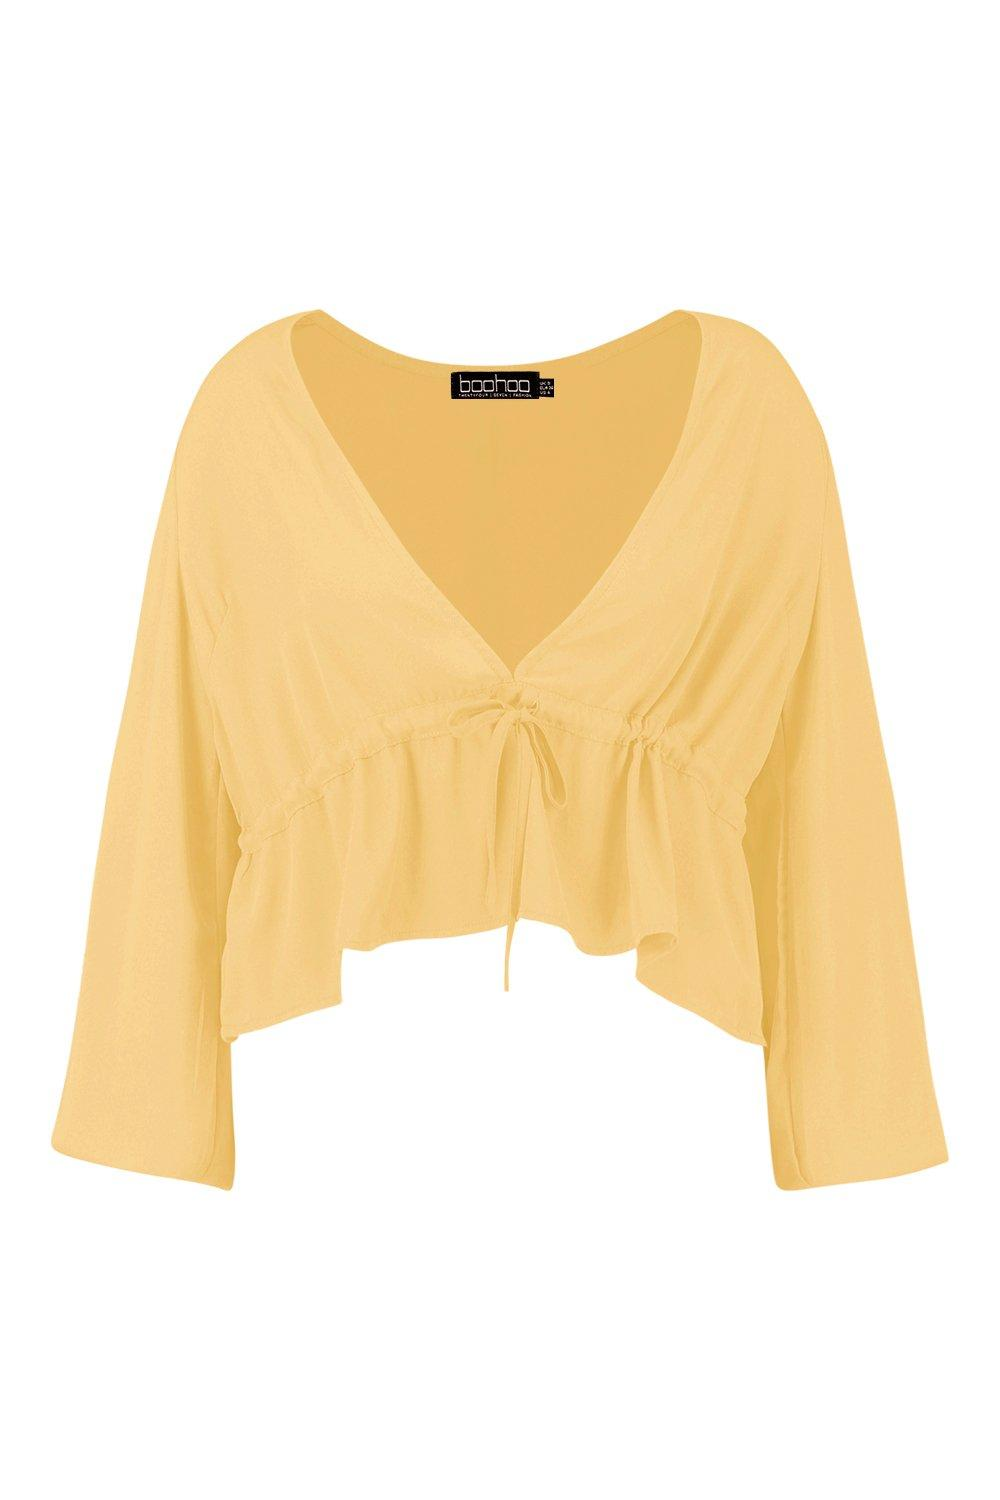 Tie Top Front Plus Split mustard Sleeve xT4SY4qE